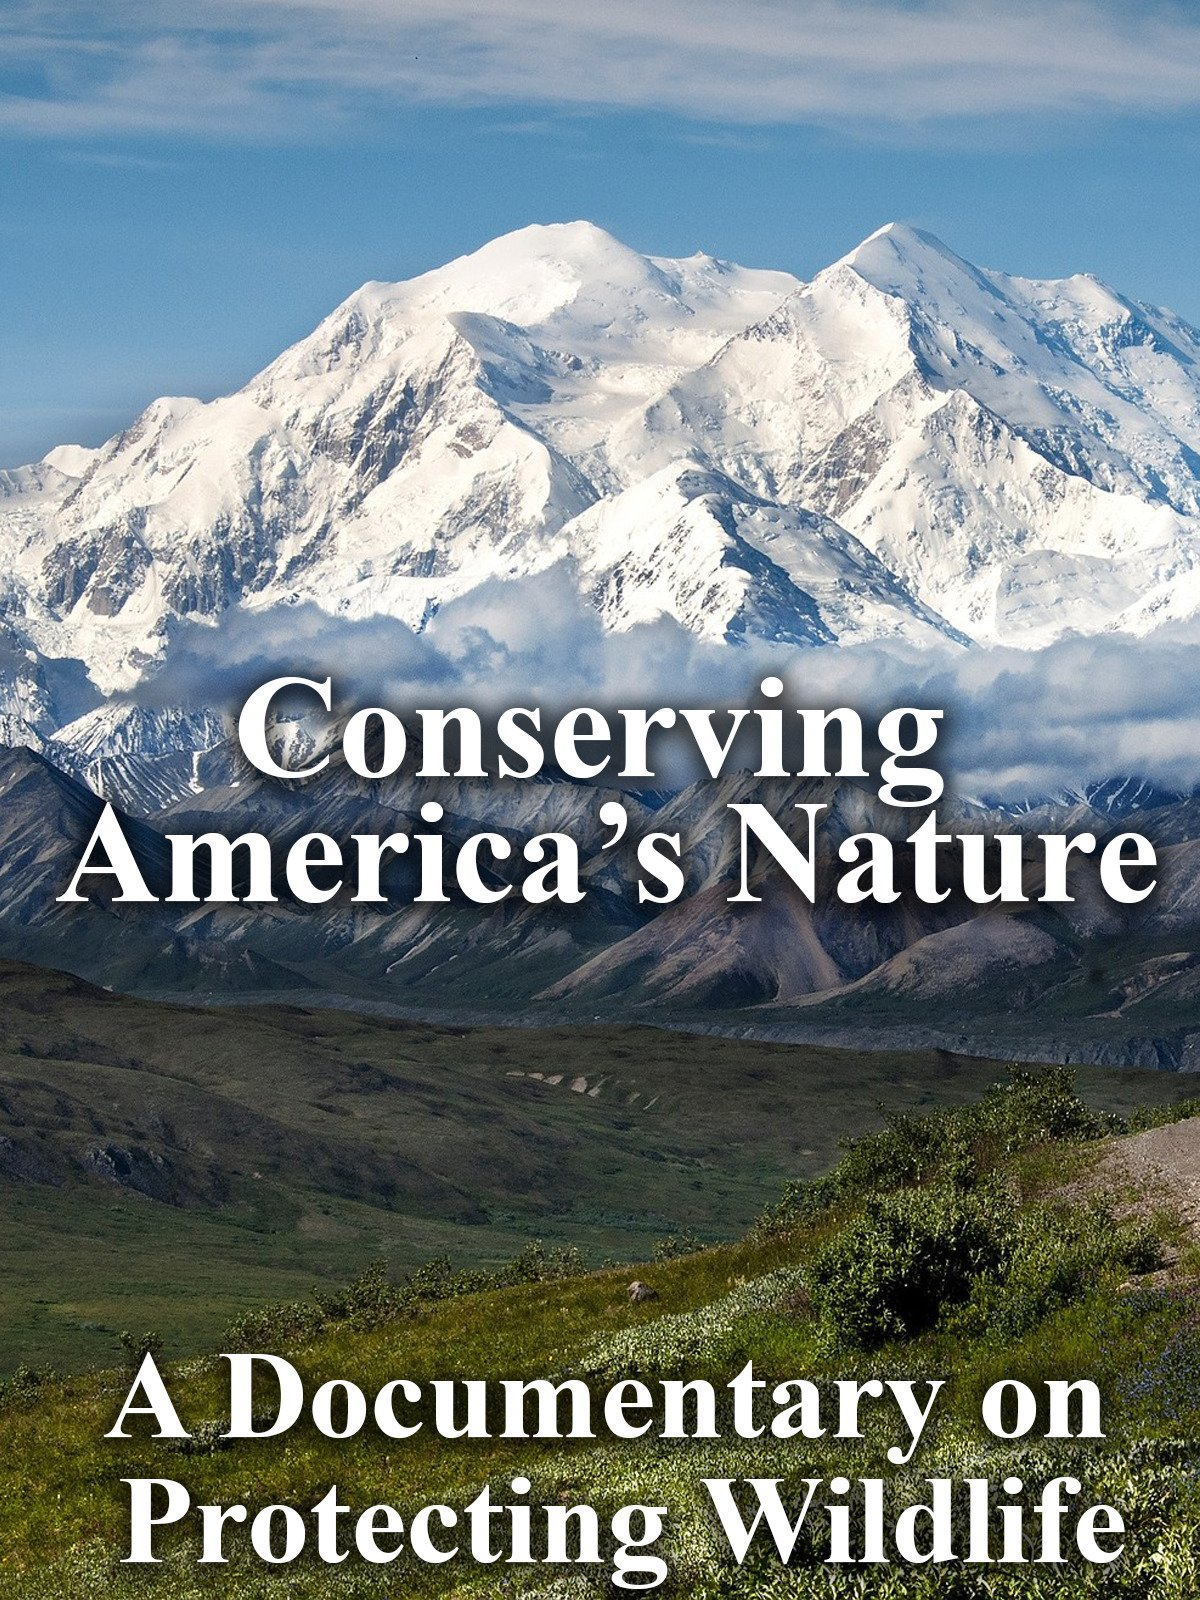 Conserving America's Nature A Documentary on Protecting Wildlife on Amazon Prime Video UK